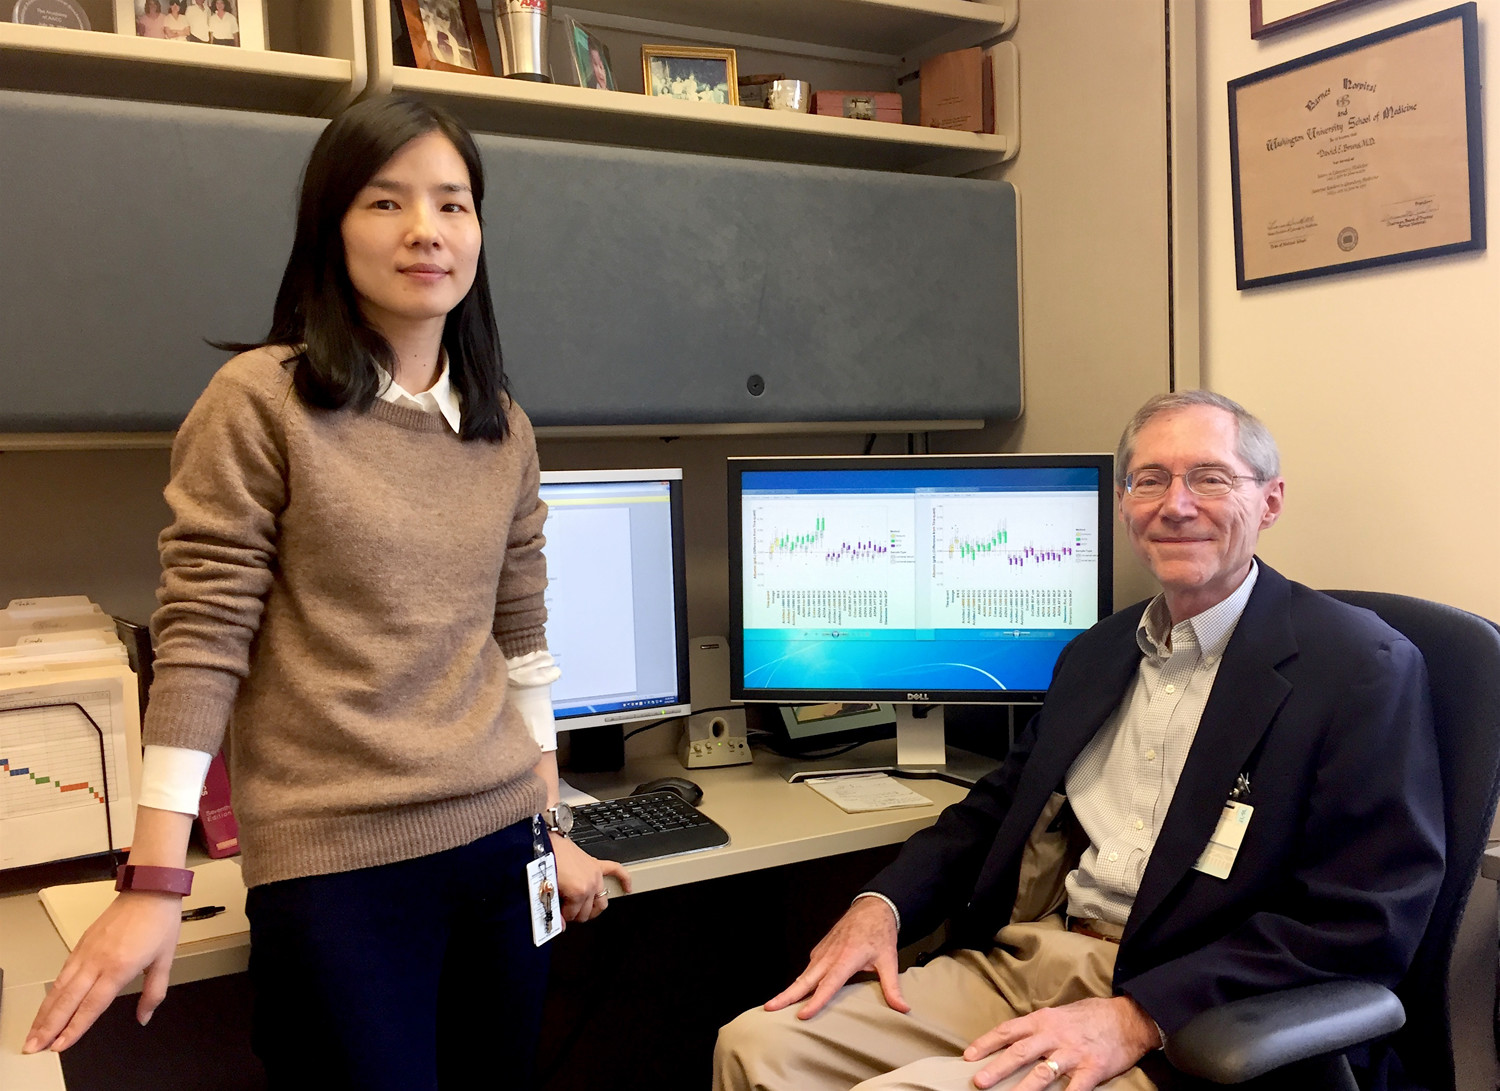 Dr. Min Yu and Dr. David Bruns were two of the UVA researchers who worked on the research with colleagues at Virginia Commonwealth University. (UVA Health System photo)